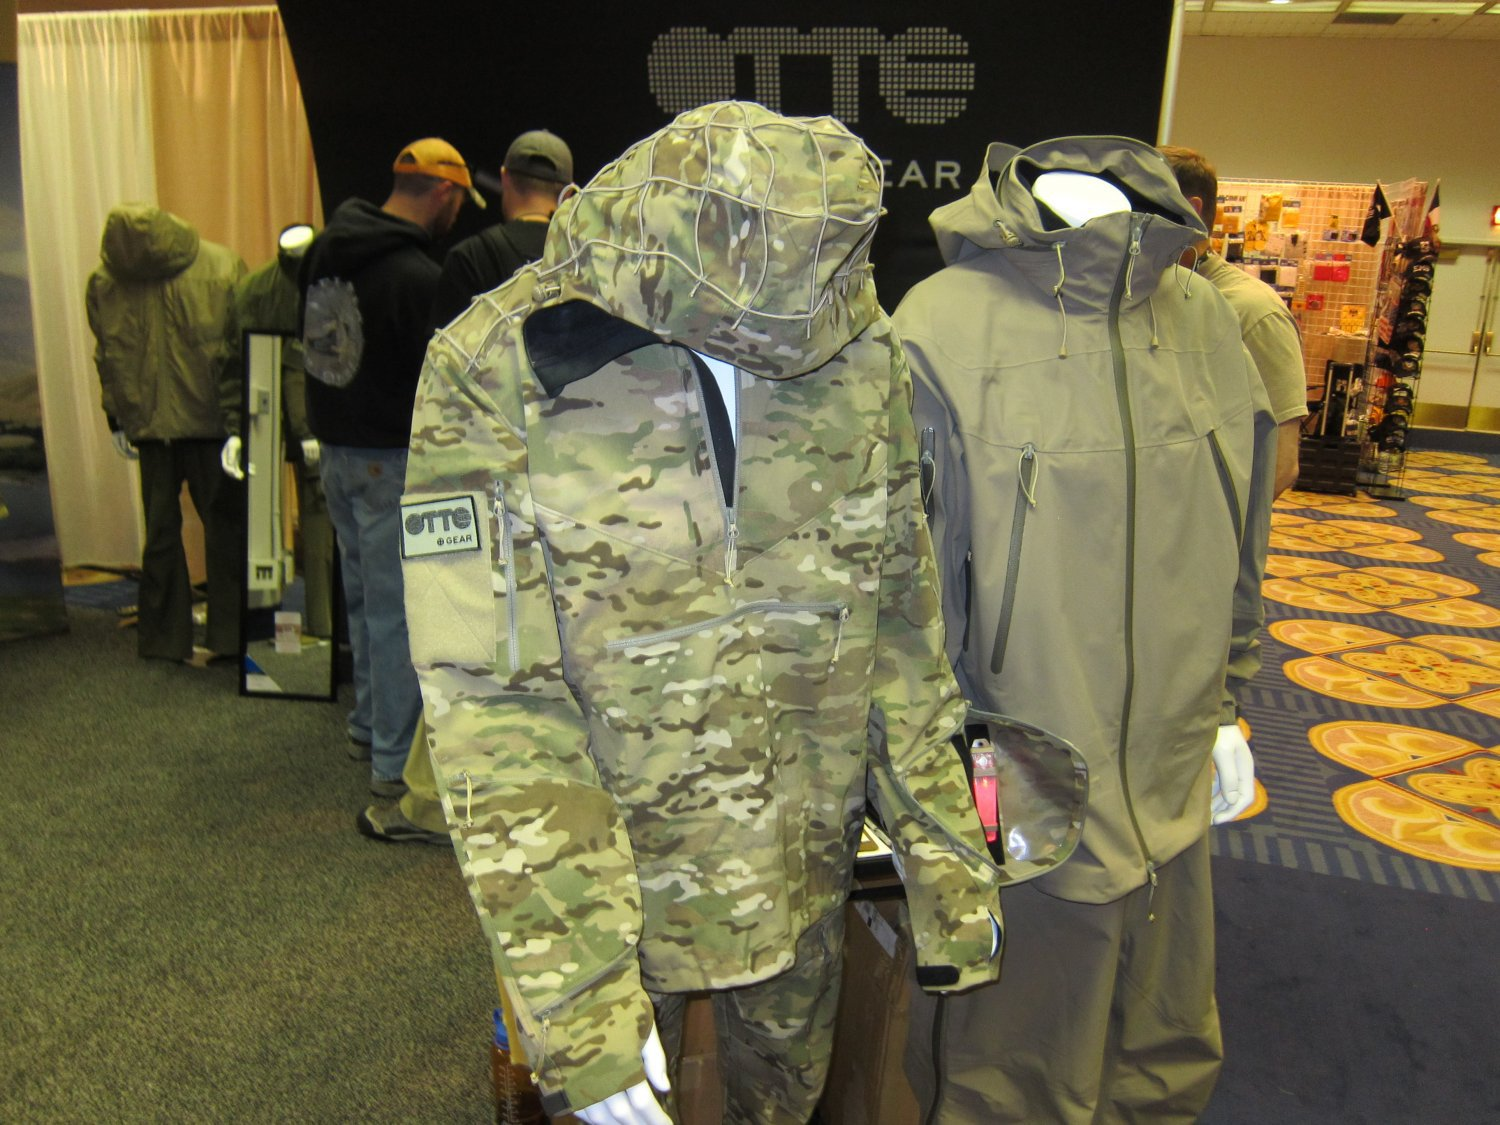 OTTE Gear Combat Anorak Hooded Pullover Tactical Softshell Jacket SHOT Show 2011 DefenseReview.com DR 1 <!  :en  >OTTE Gear Recce/Overwatch Anorak: High End, High Tech Tactical/Combat Soft Shell Hoodie Sniper Jacket (Pullover Type) with Crye MultiCam Camouflage Pattern and Ghillie Platform for Snipers, Recce Operators/Assaulters and Civilian Tactical Shooters<!  :  >